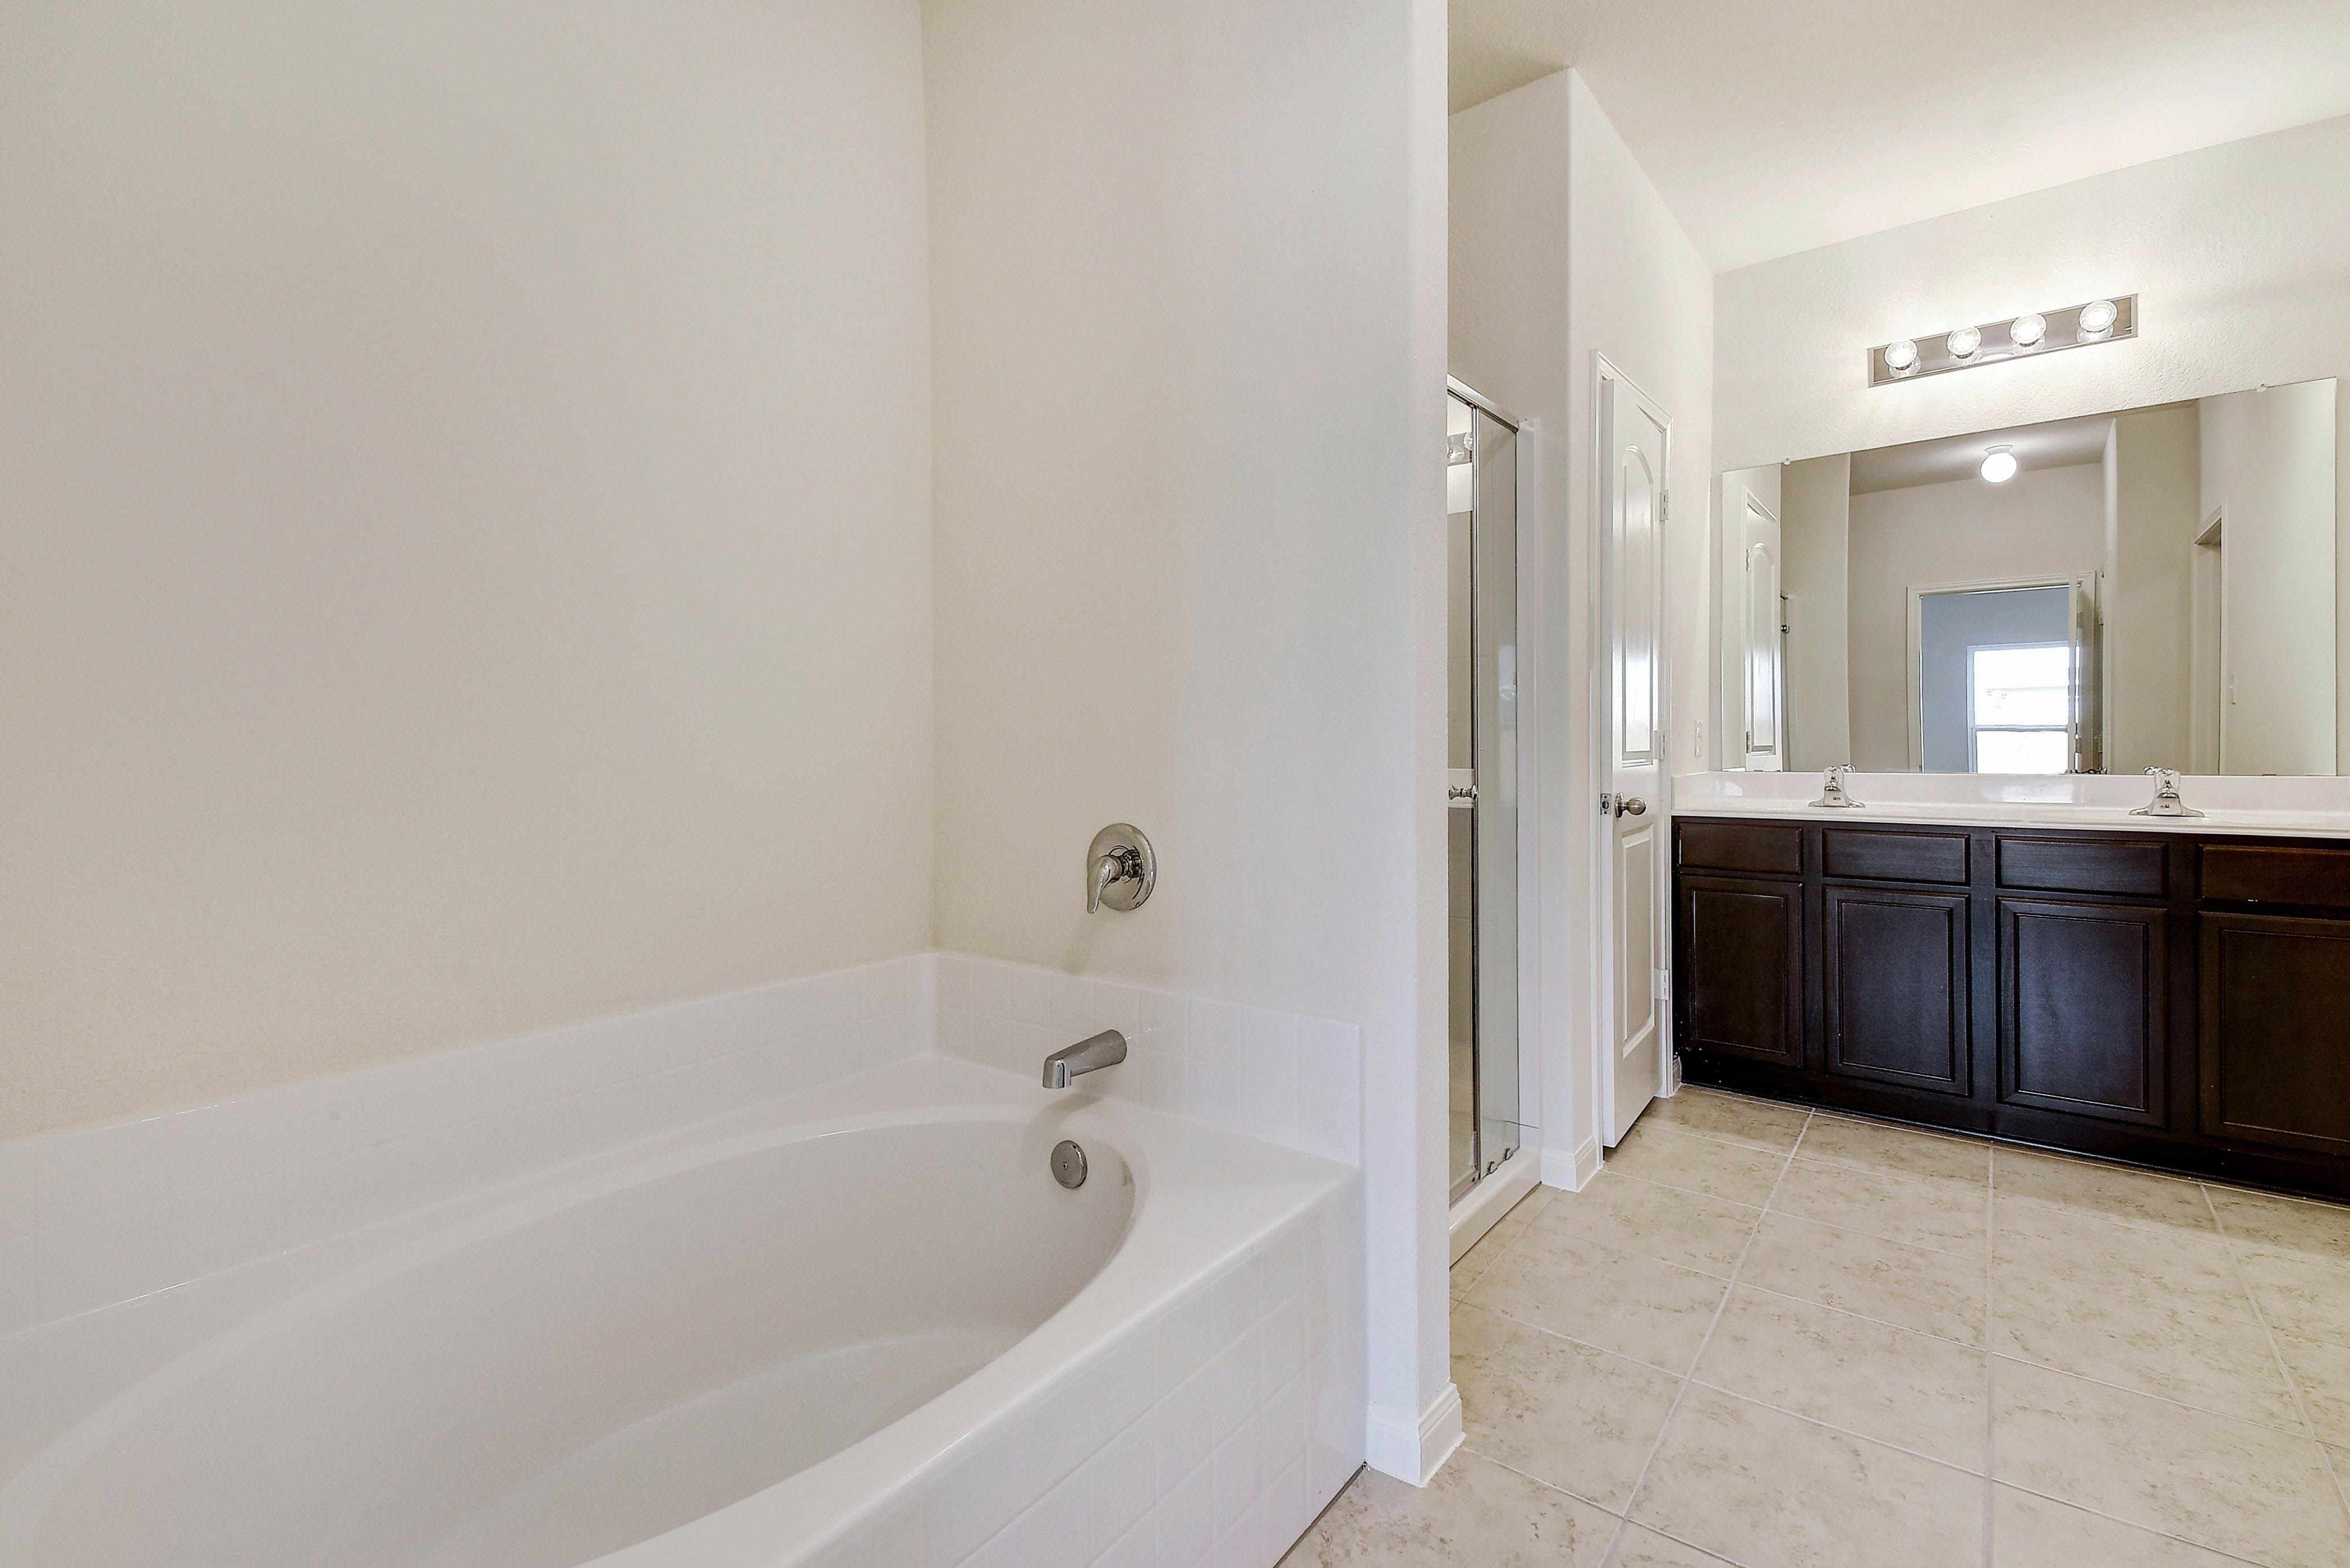 Bathroom featured in the Victoria By LGI Homes in San Antonio, TX